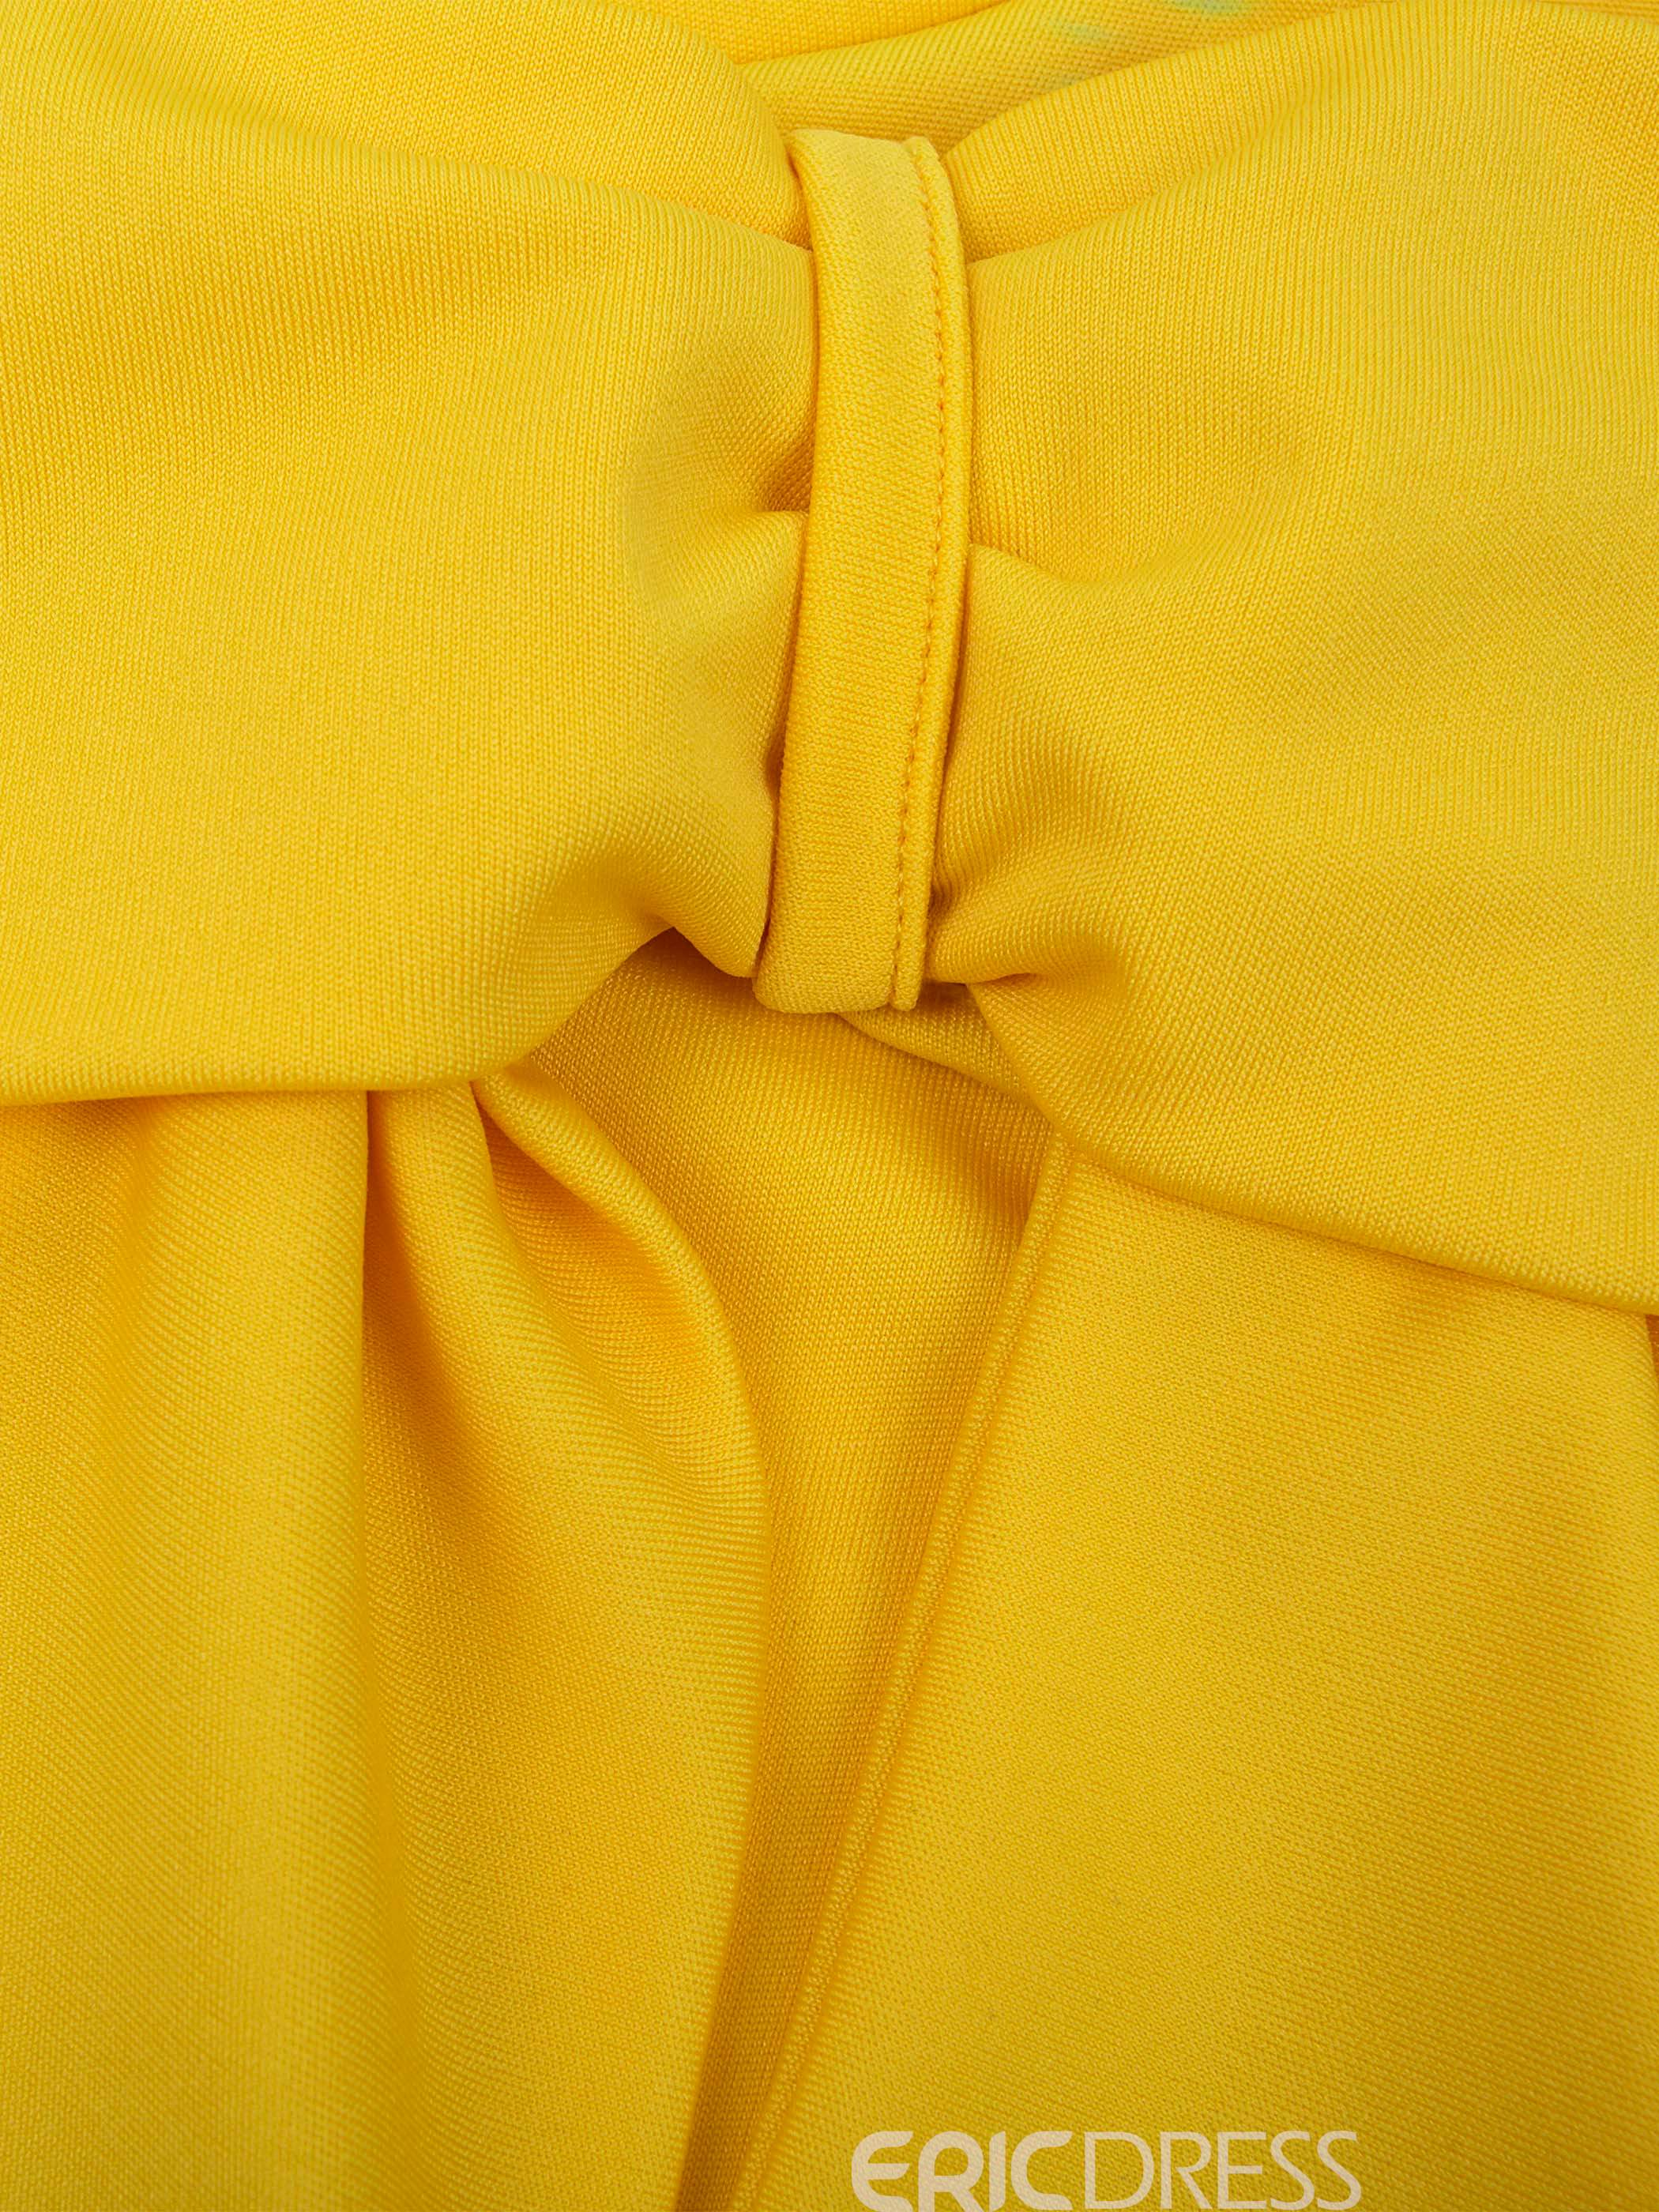 Ericdress Yellow Stand Collar Bowknot Women's Sheath Dress